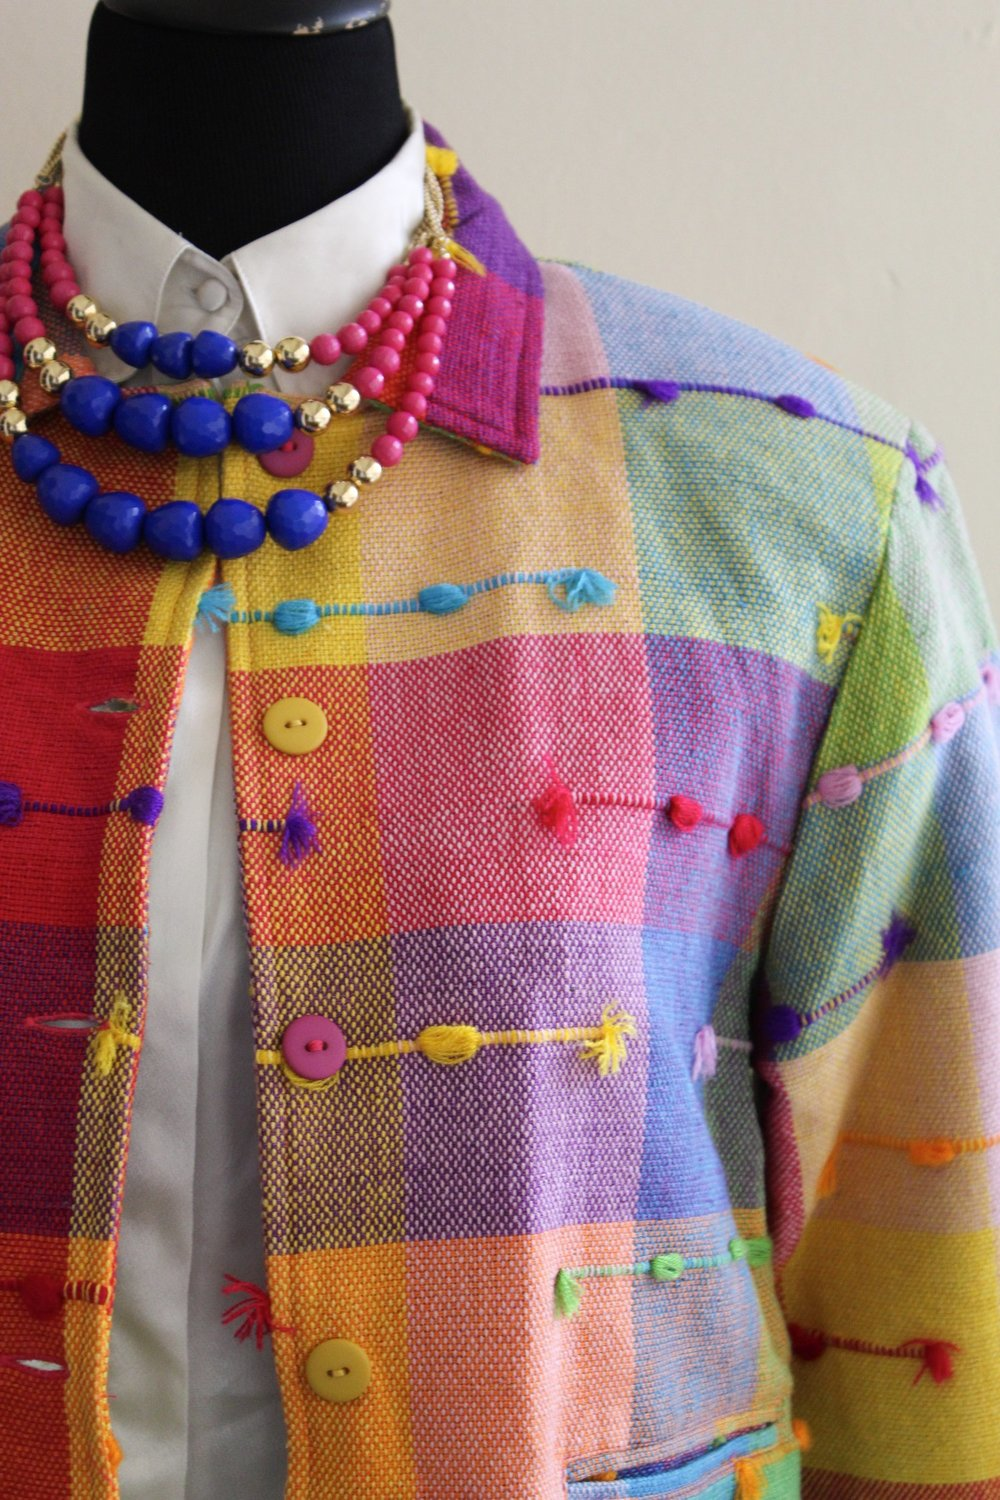 Multi-Colored Fun Patterned Jacket.